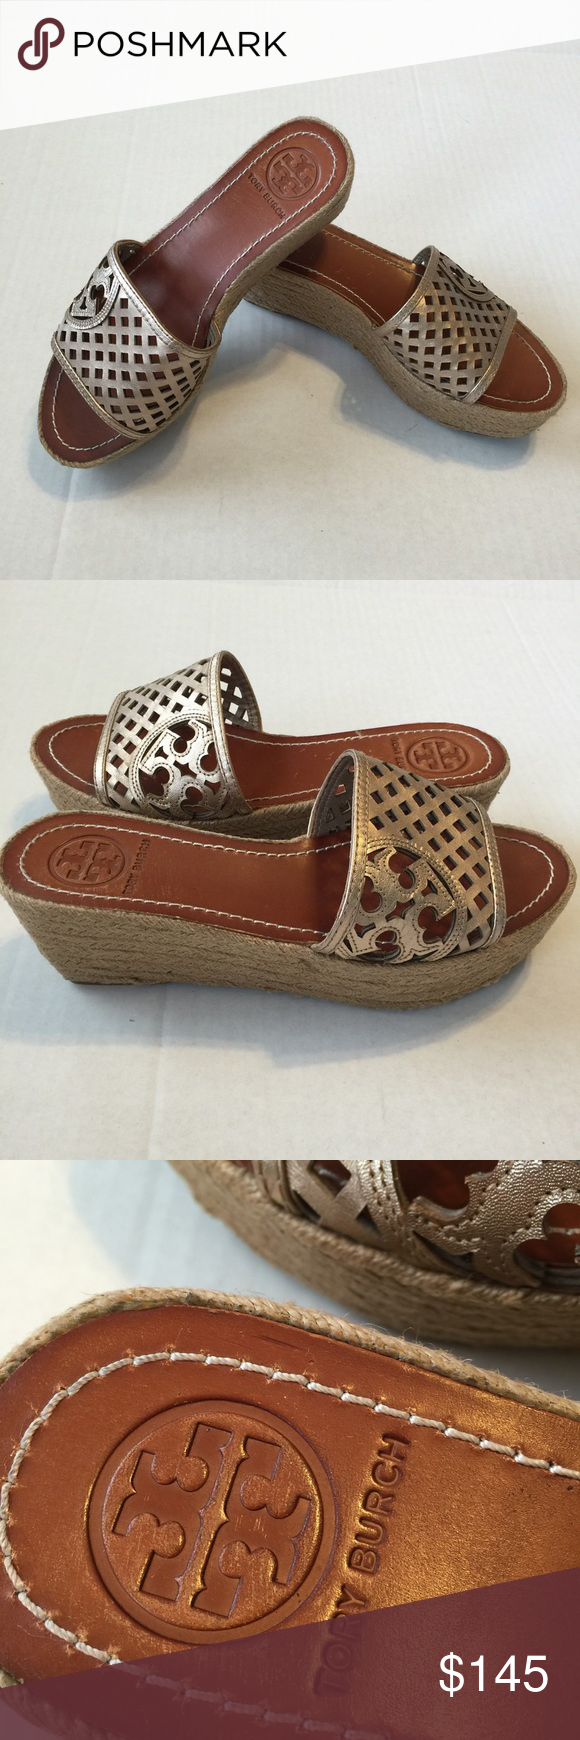 "Tory Burch Wedge Espadrilles.   Size 8 Really cute leather slide on espadrilles. Cut out logo on side. 2 1/2"" heel. No box. Only worn a few times. . Tory Burch Shoes"